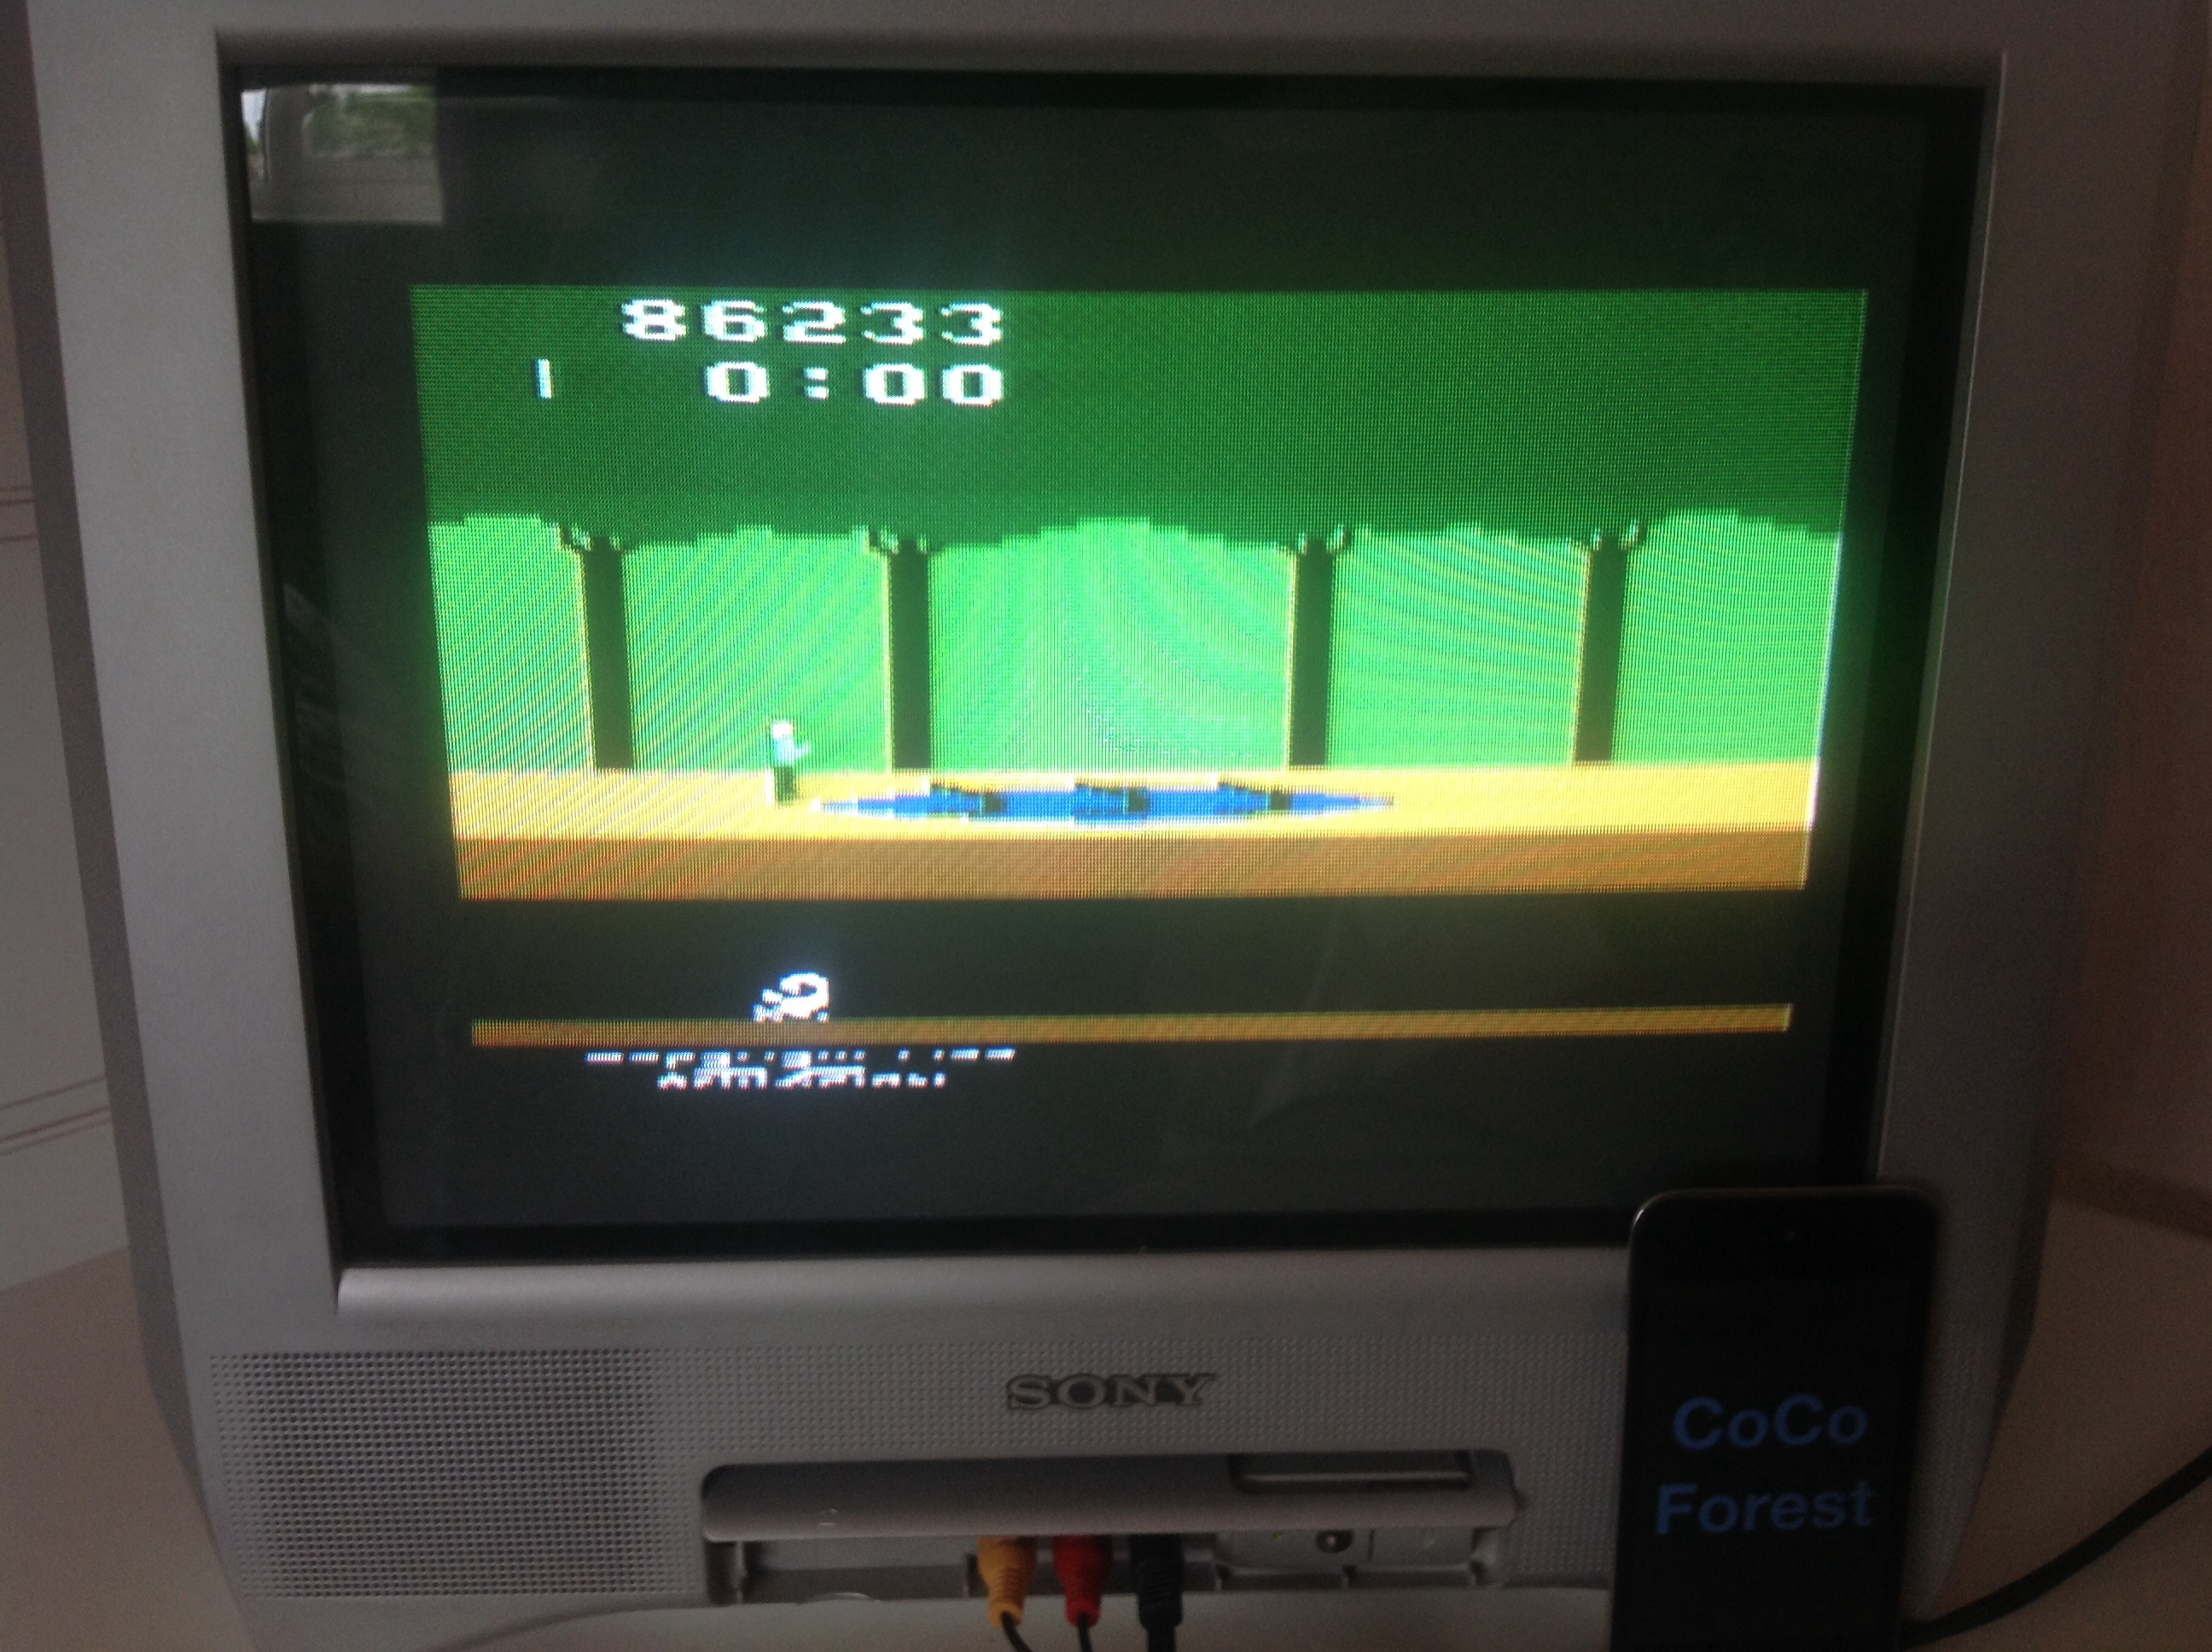 CoCoForest: Pitfall! (Atari 2600 Expert/A) 86,233 points on 2014-05-20 10:34:21